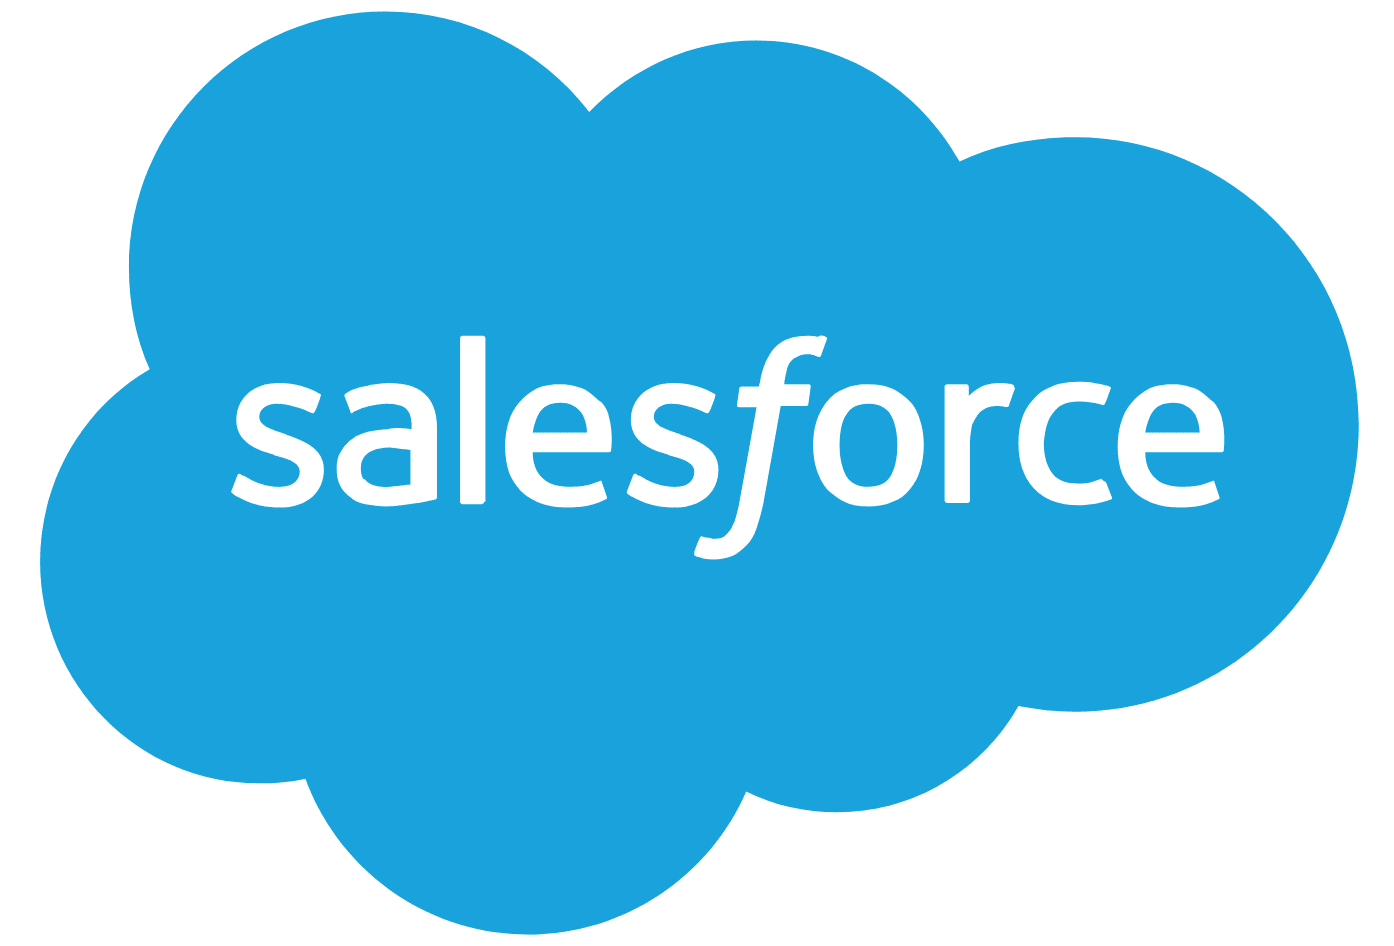 Salesforce Review: Where it shines (and where it's quite overrated)